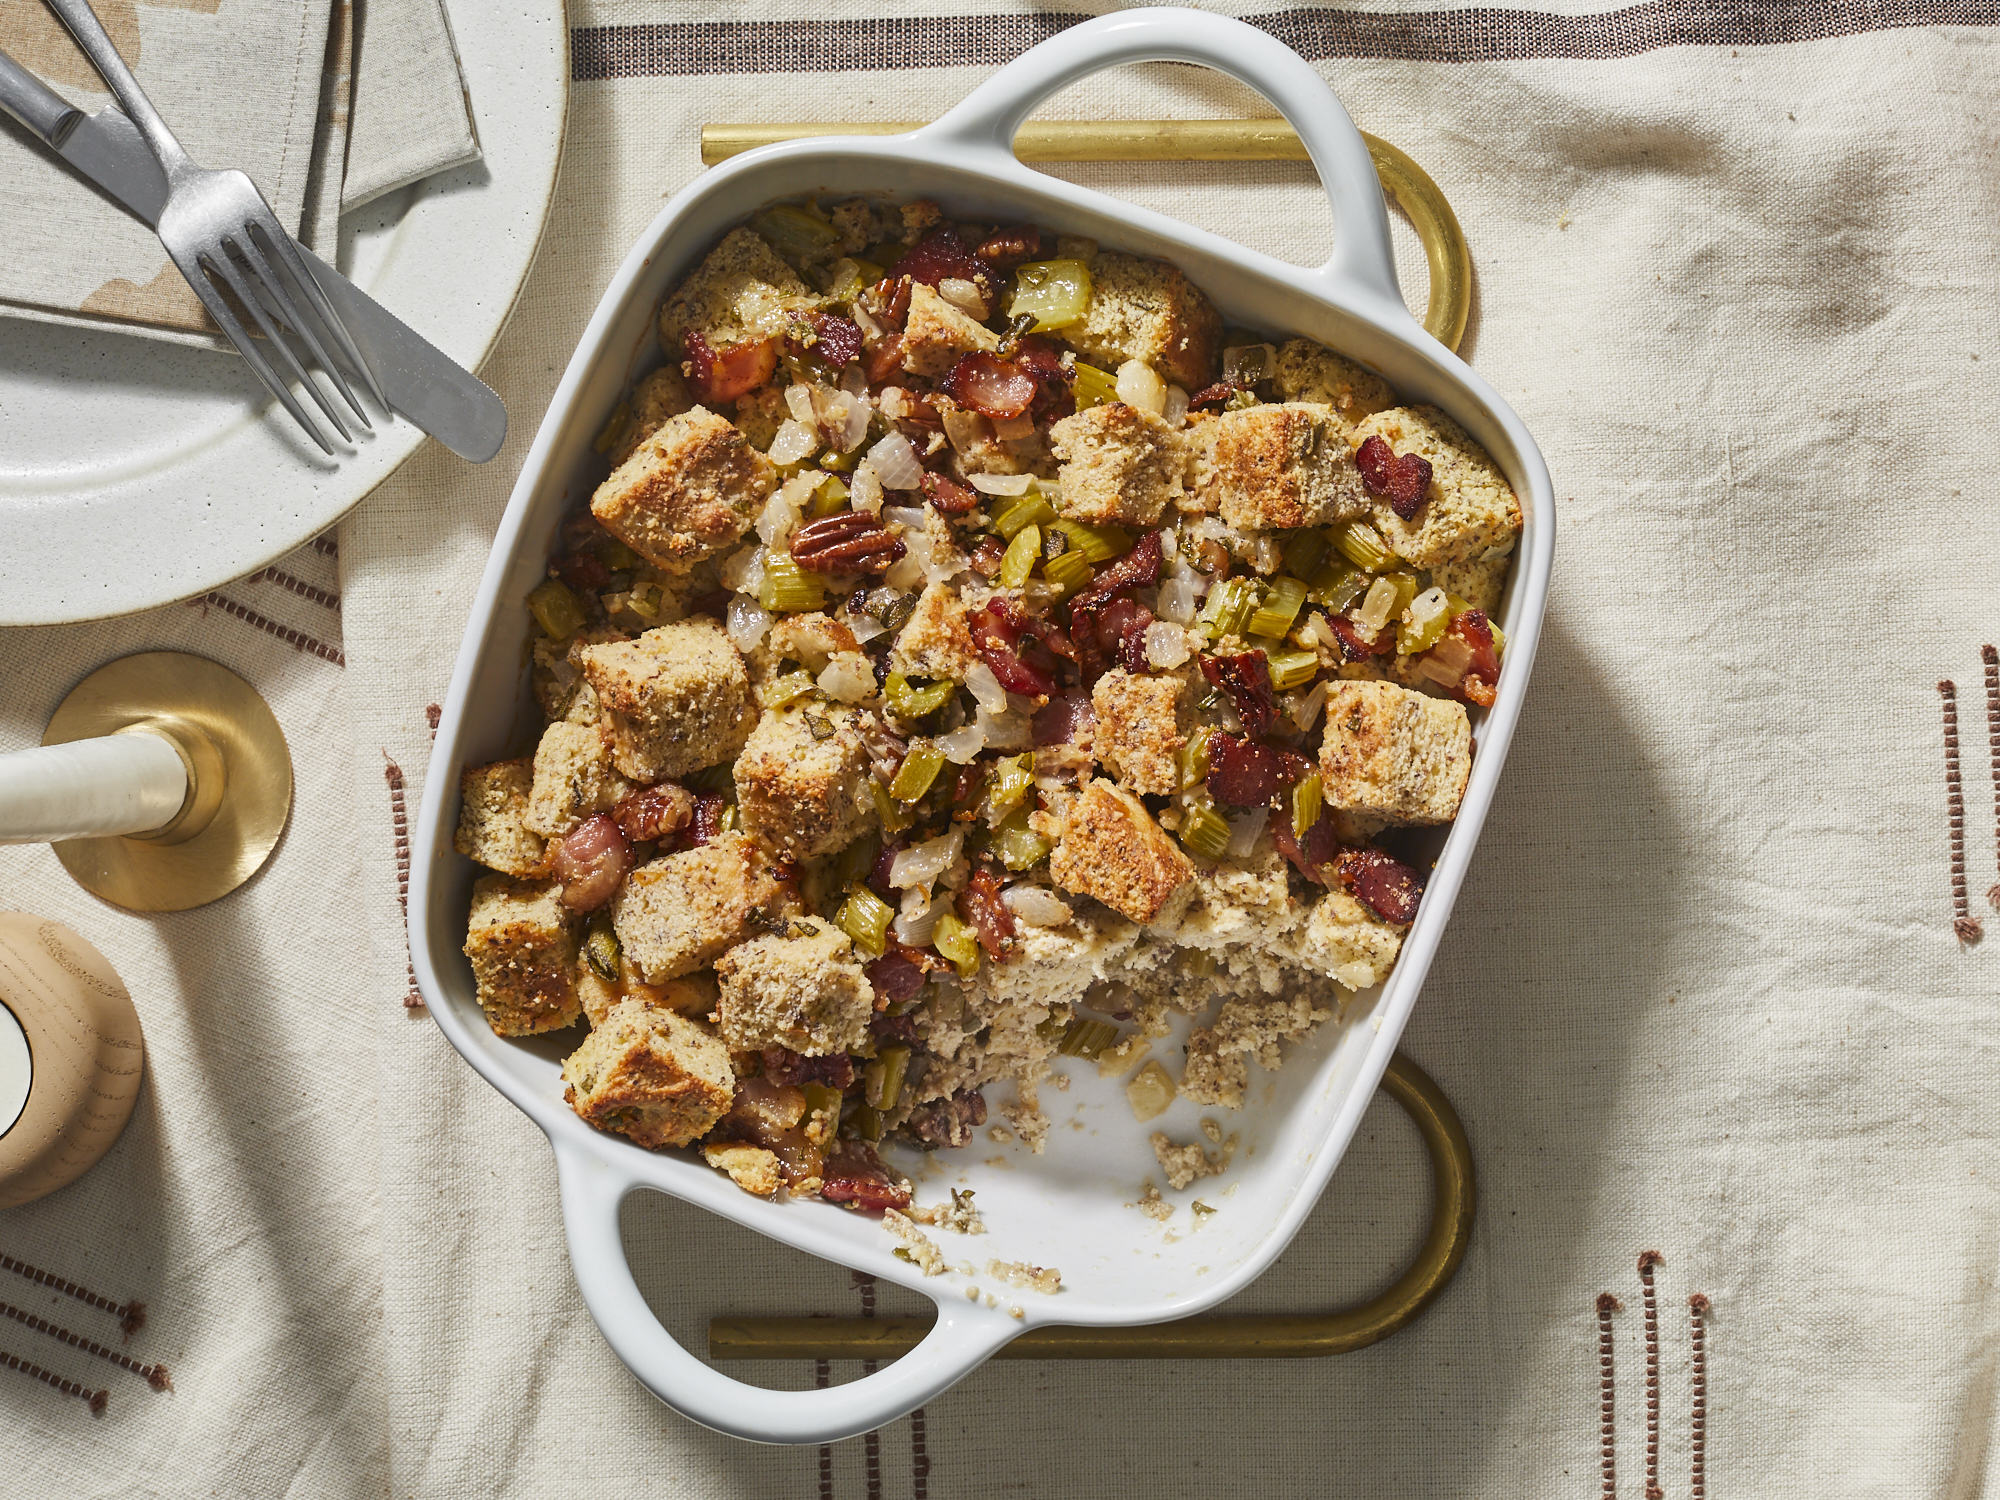 What to Do With Leftover Stuffing